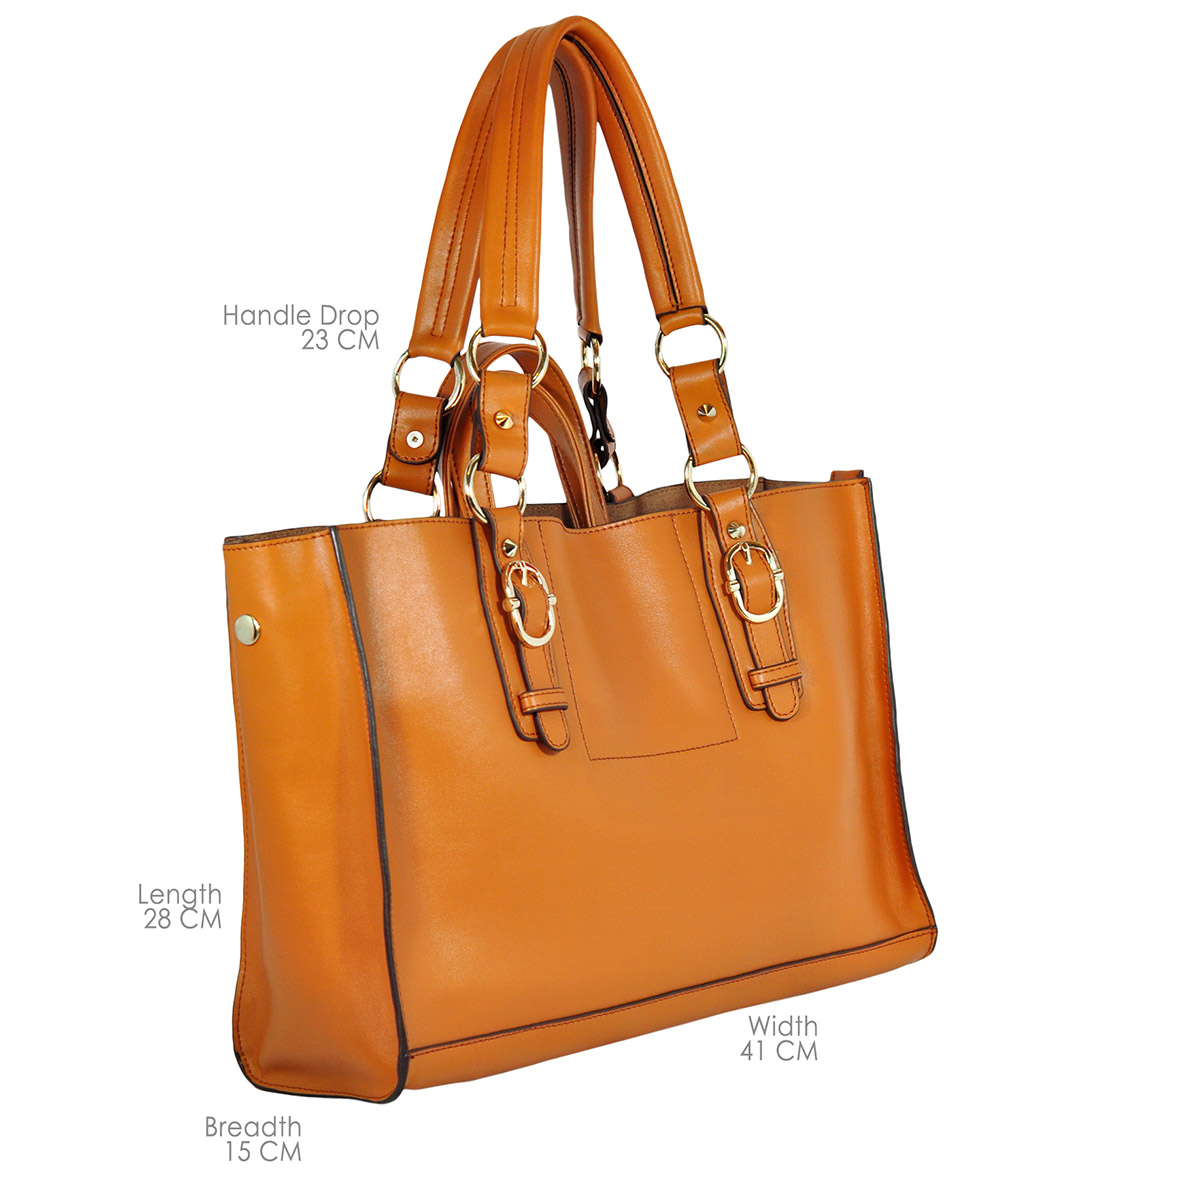 THE BOULEVARD TOTE